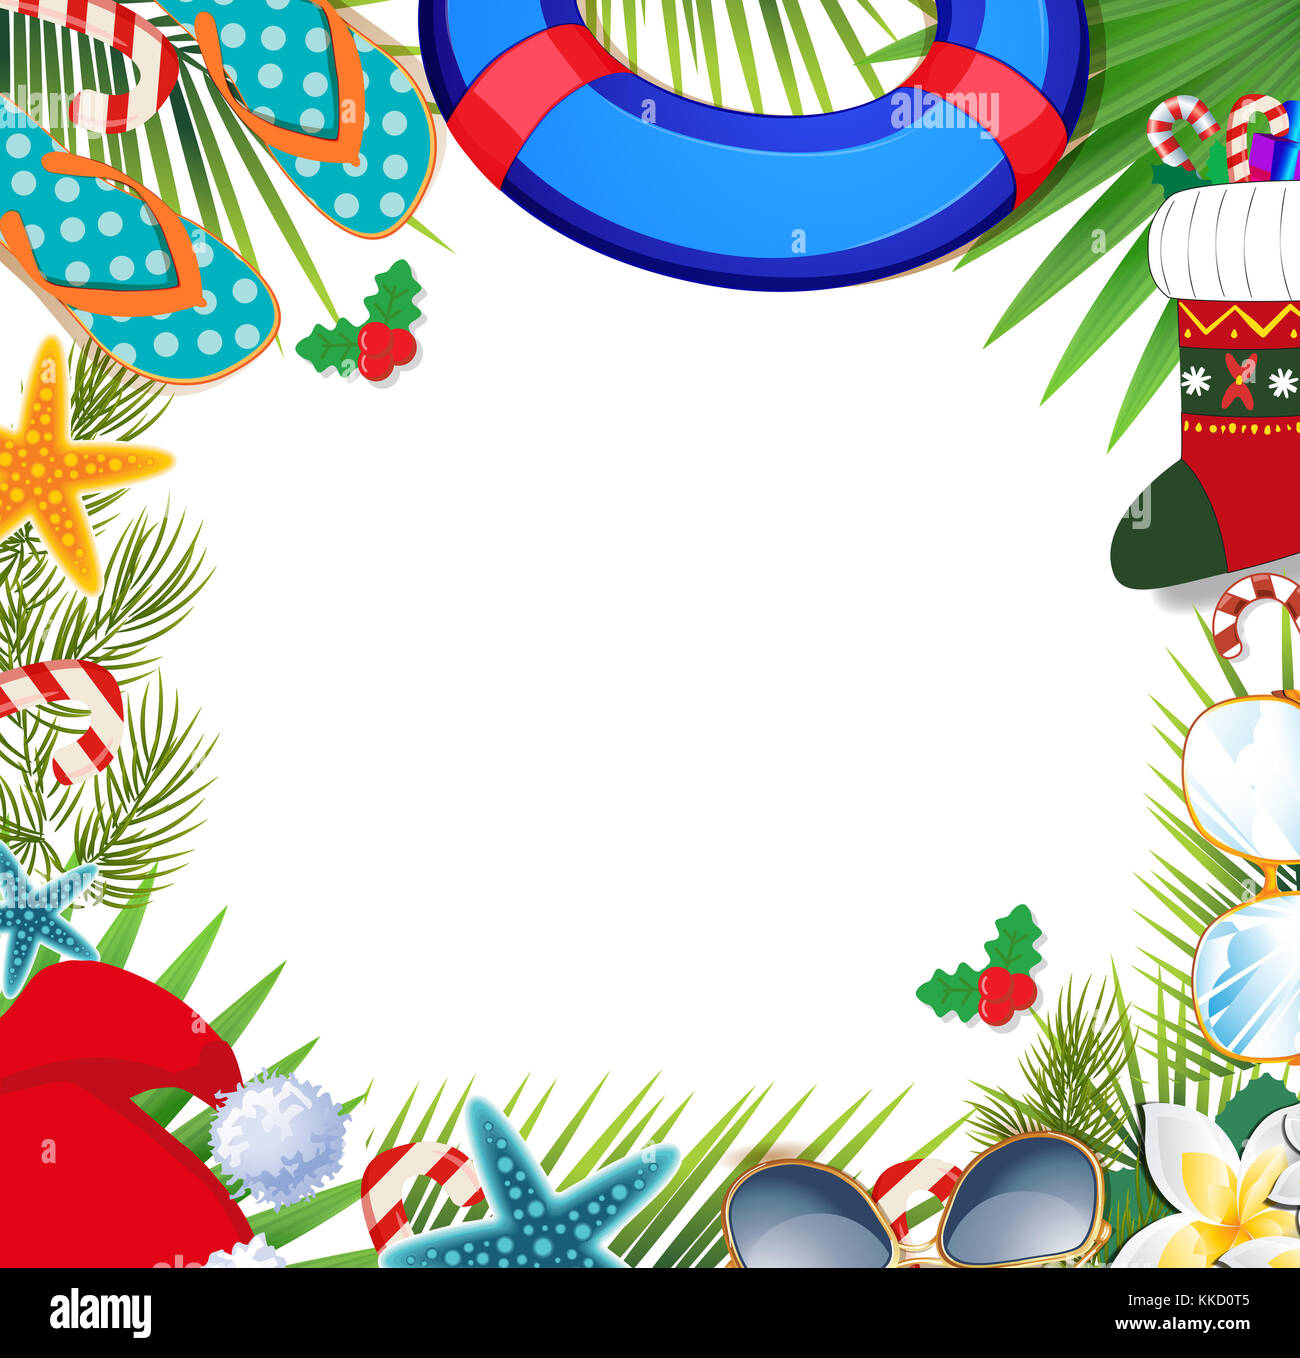 merry christmas and happy new year border on a warm climate design background summer vacation accessories and palm leaves with santa hat on white ba